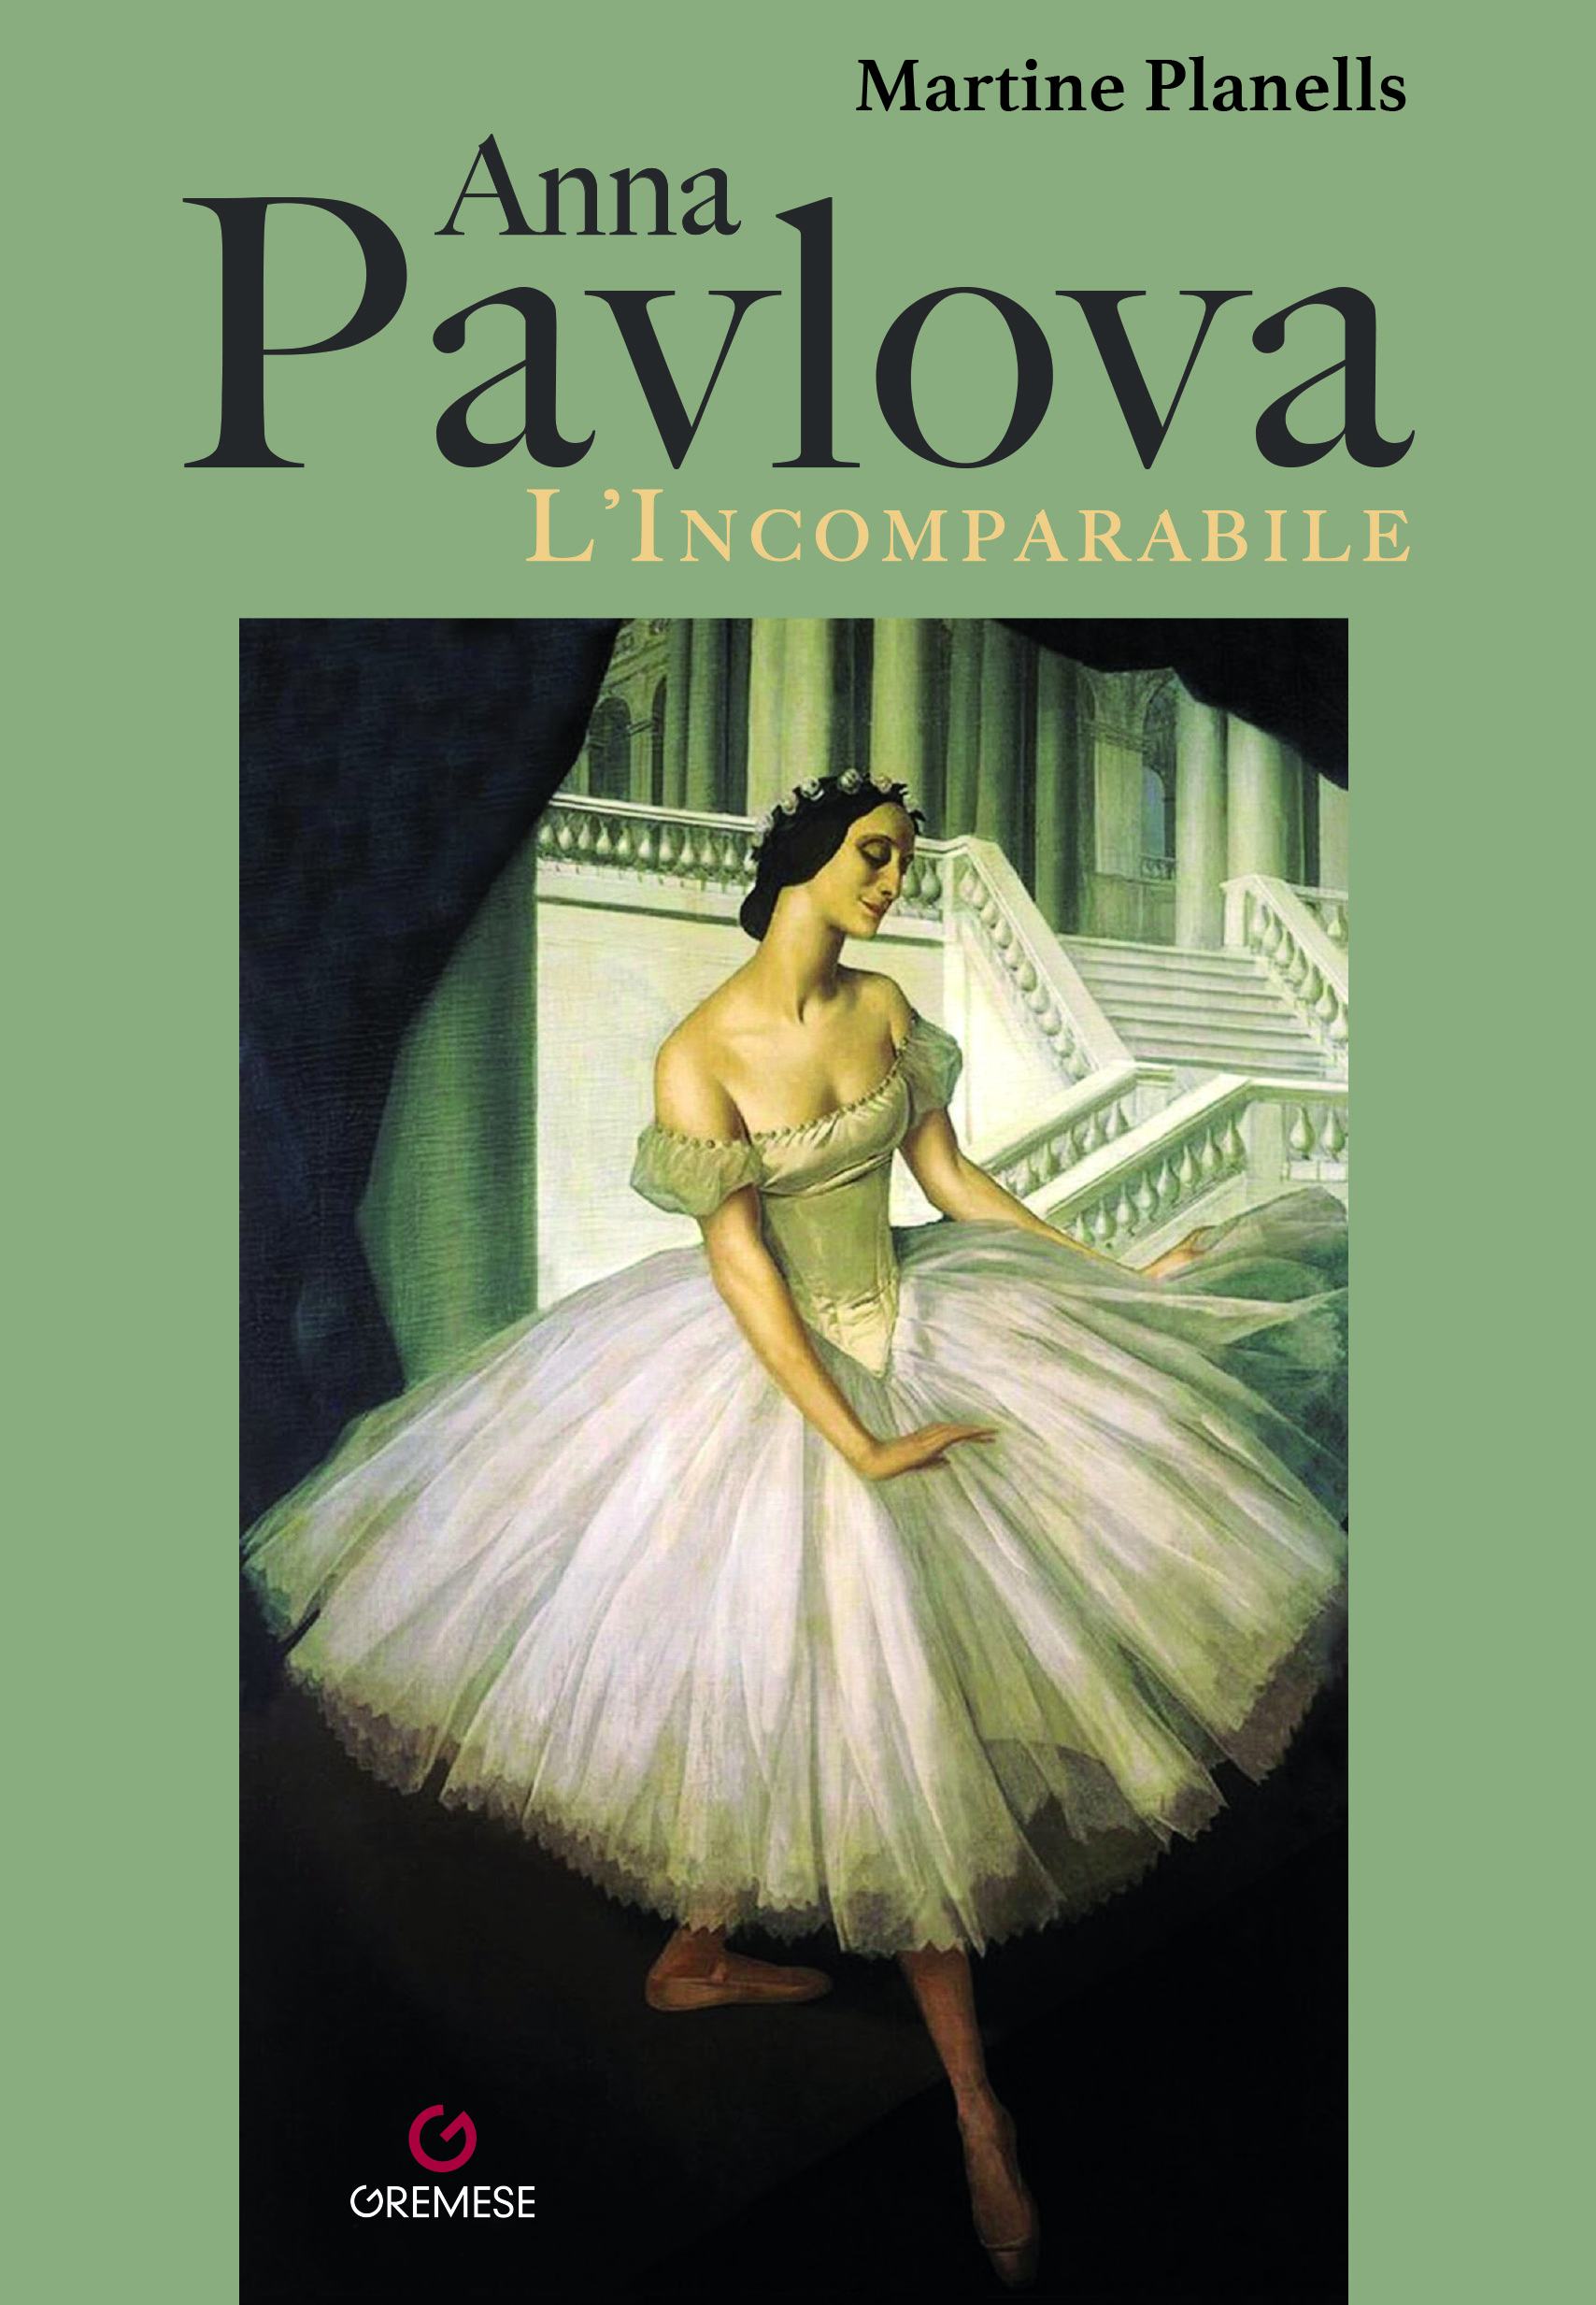 Anna Pavlova – L'incomparabile (Anna Pavlova – The Incomparable)